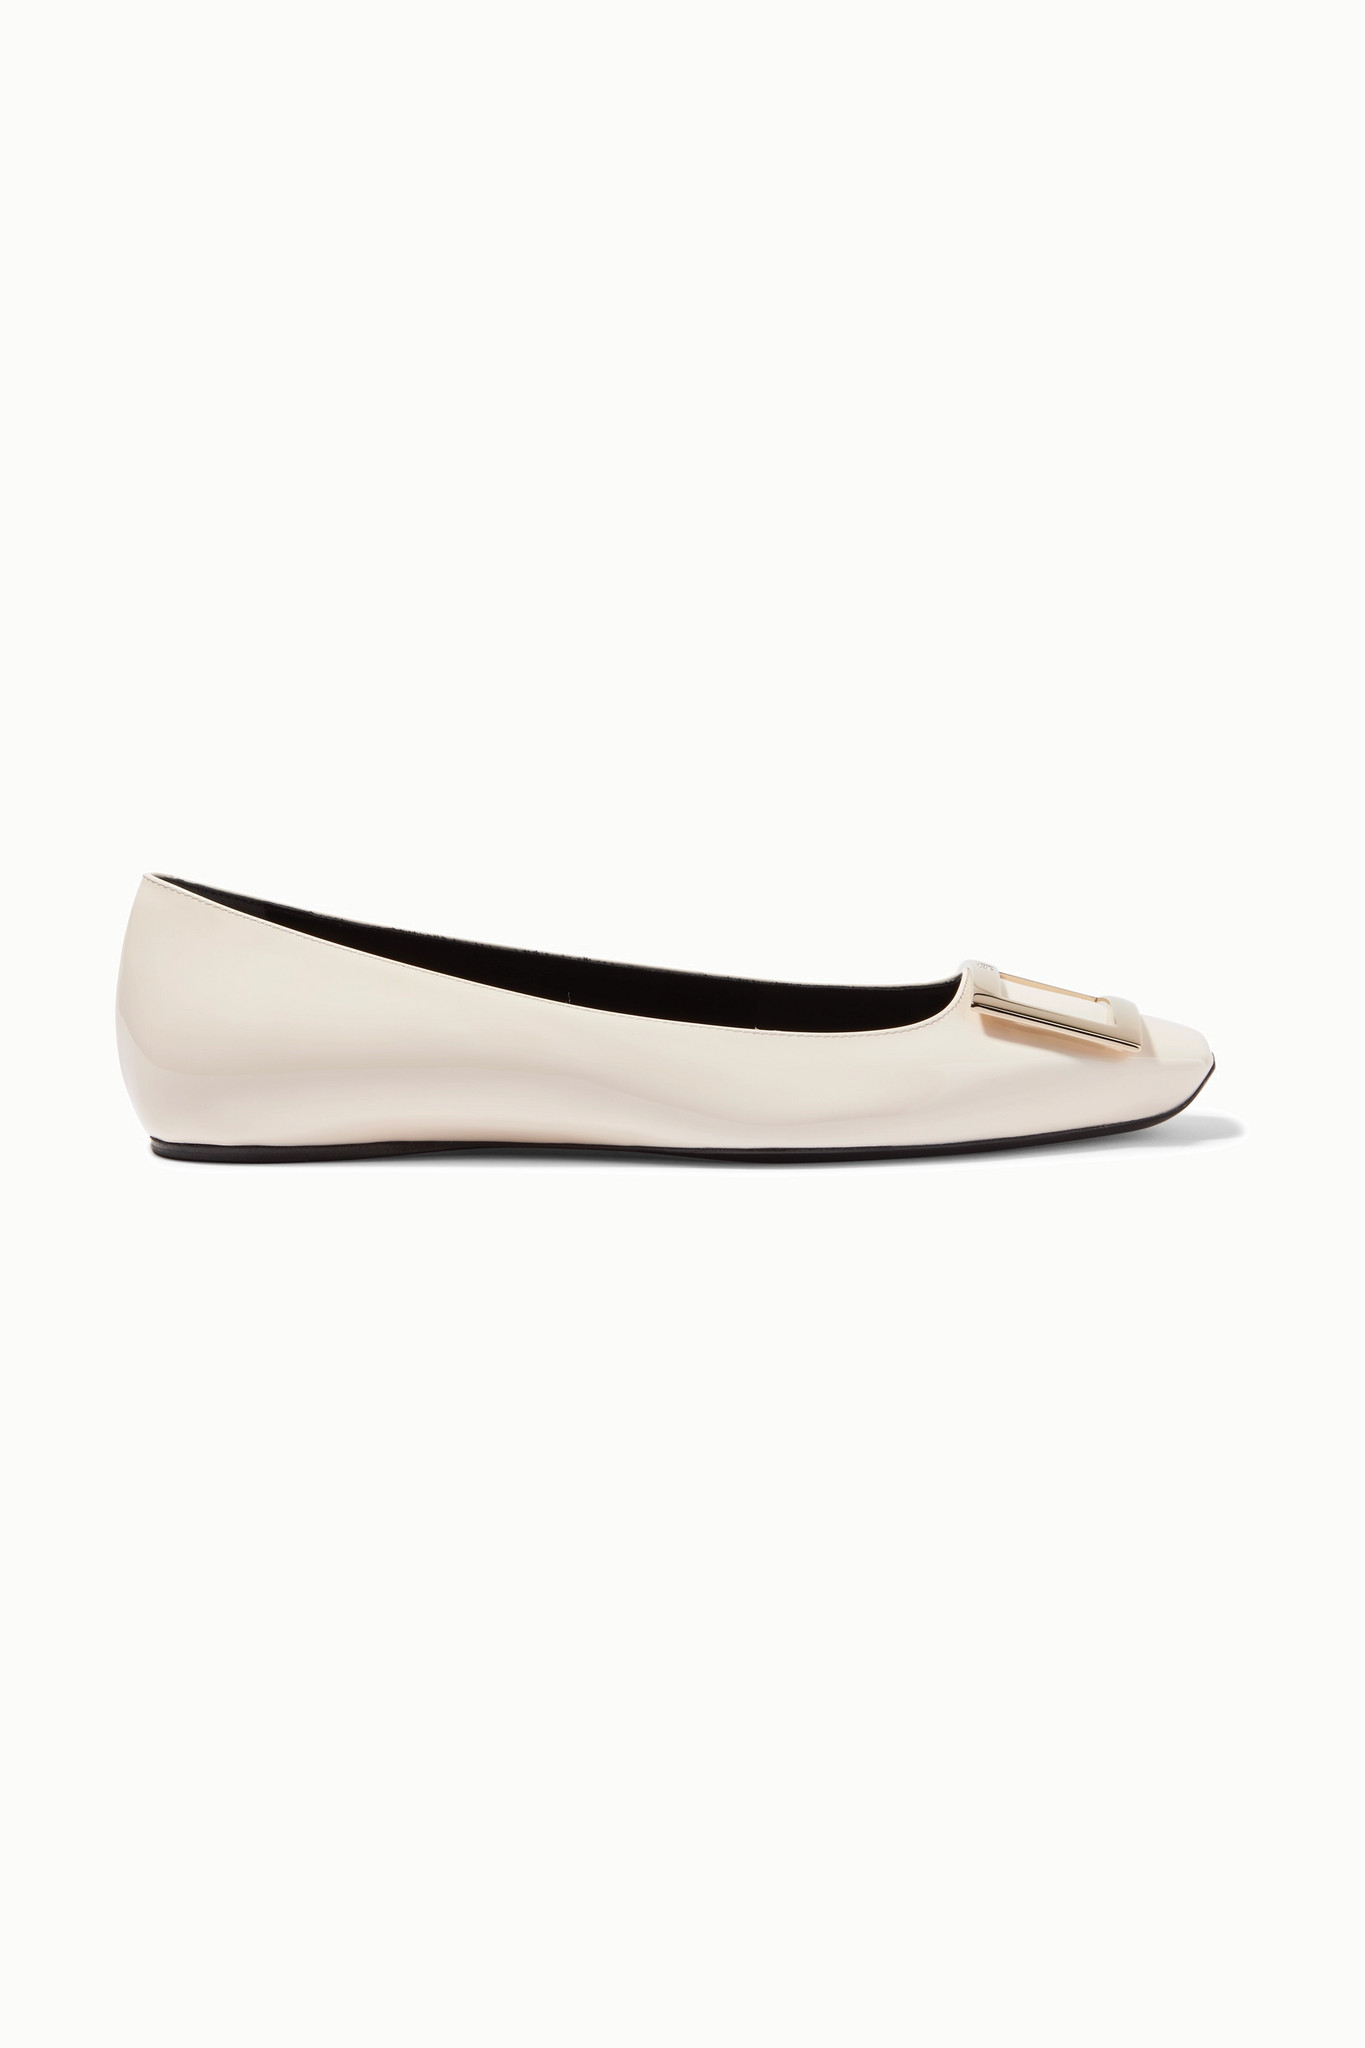 ROGER VIVIER - Trompette Bellerine Patent-leather Ballet Flats - White - IT39.5